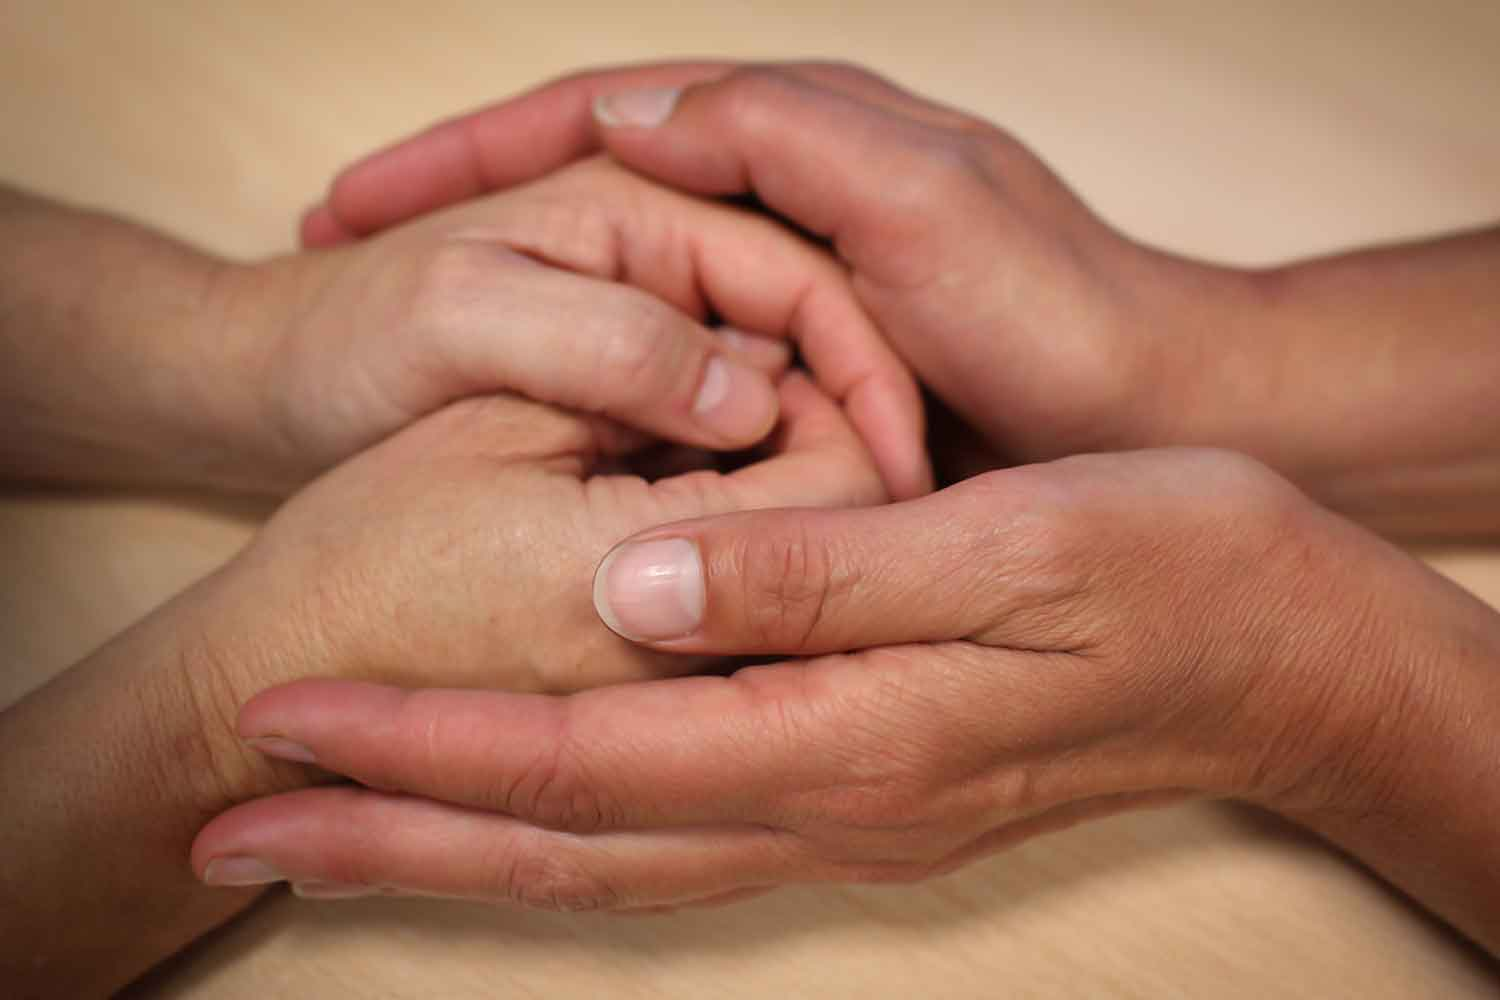 A person's hands wrapped in another person's hands giving support